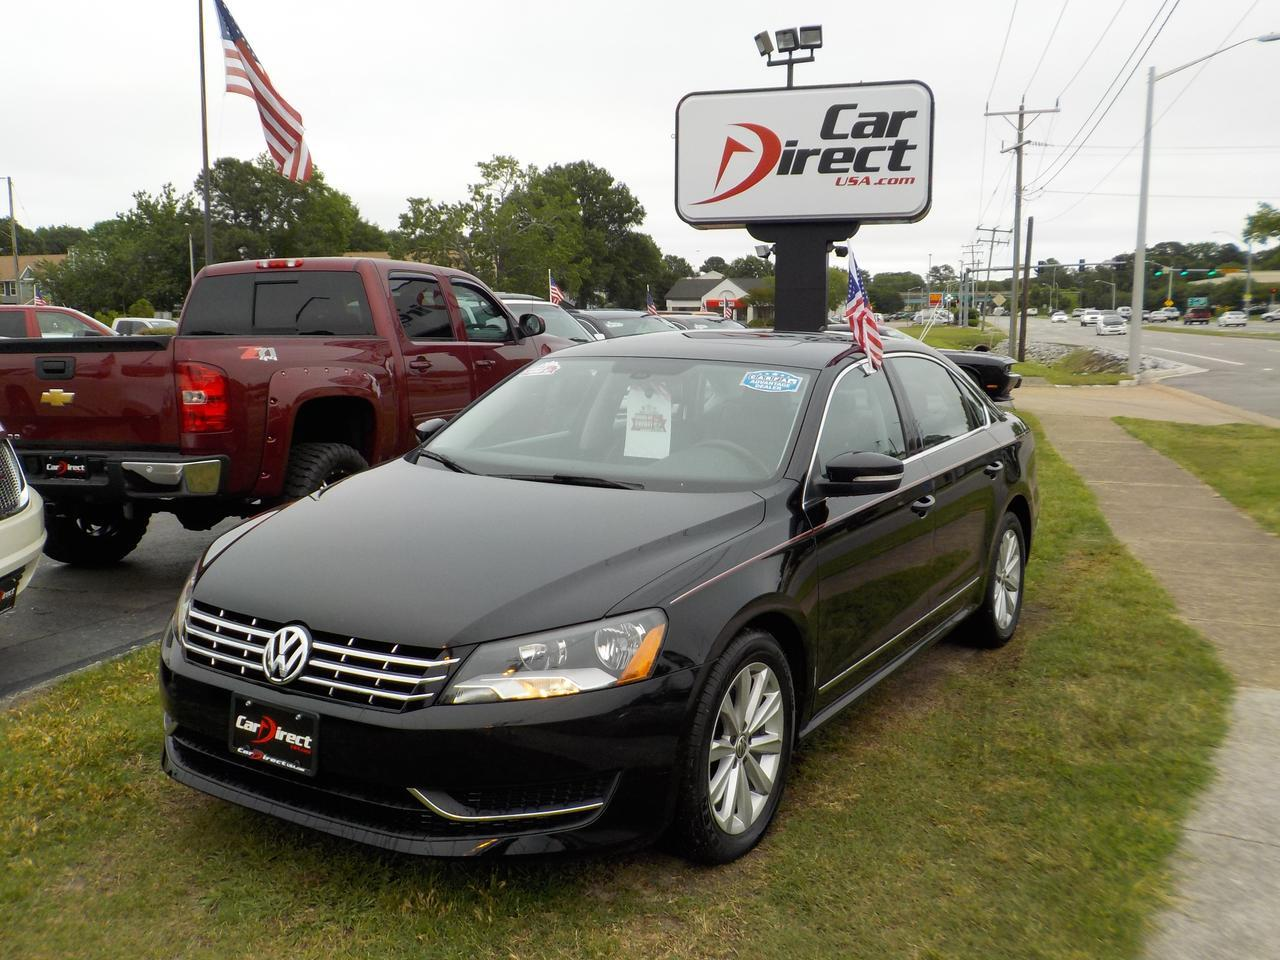 2013 VOLKSWAGEN PASSAT SEL, WARRANTY, FENDER SOUND SYSTEN, NAVI, BLUETOOTH, BACKUP CAM, SUNROOF, LEATHER!!